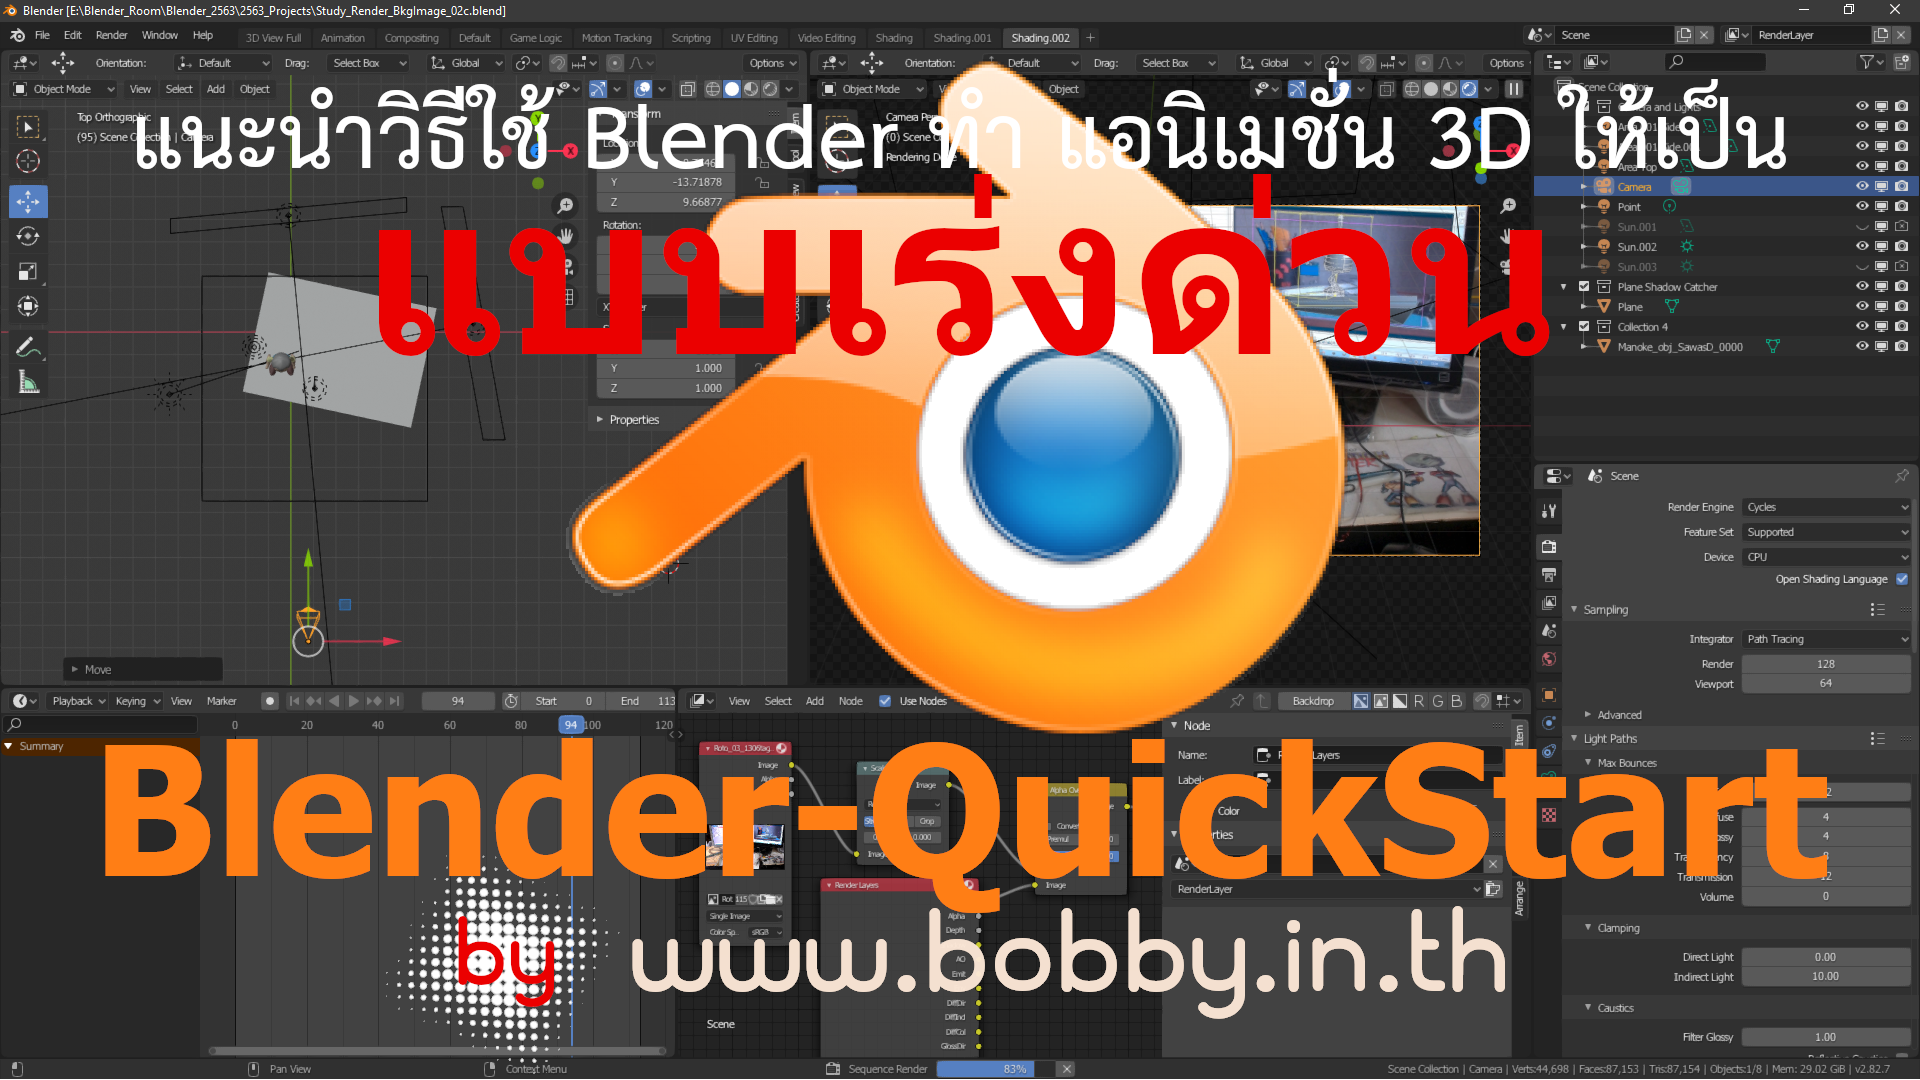 Blender Quick Start by Bobby.in.th